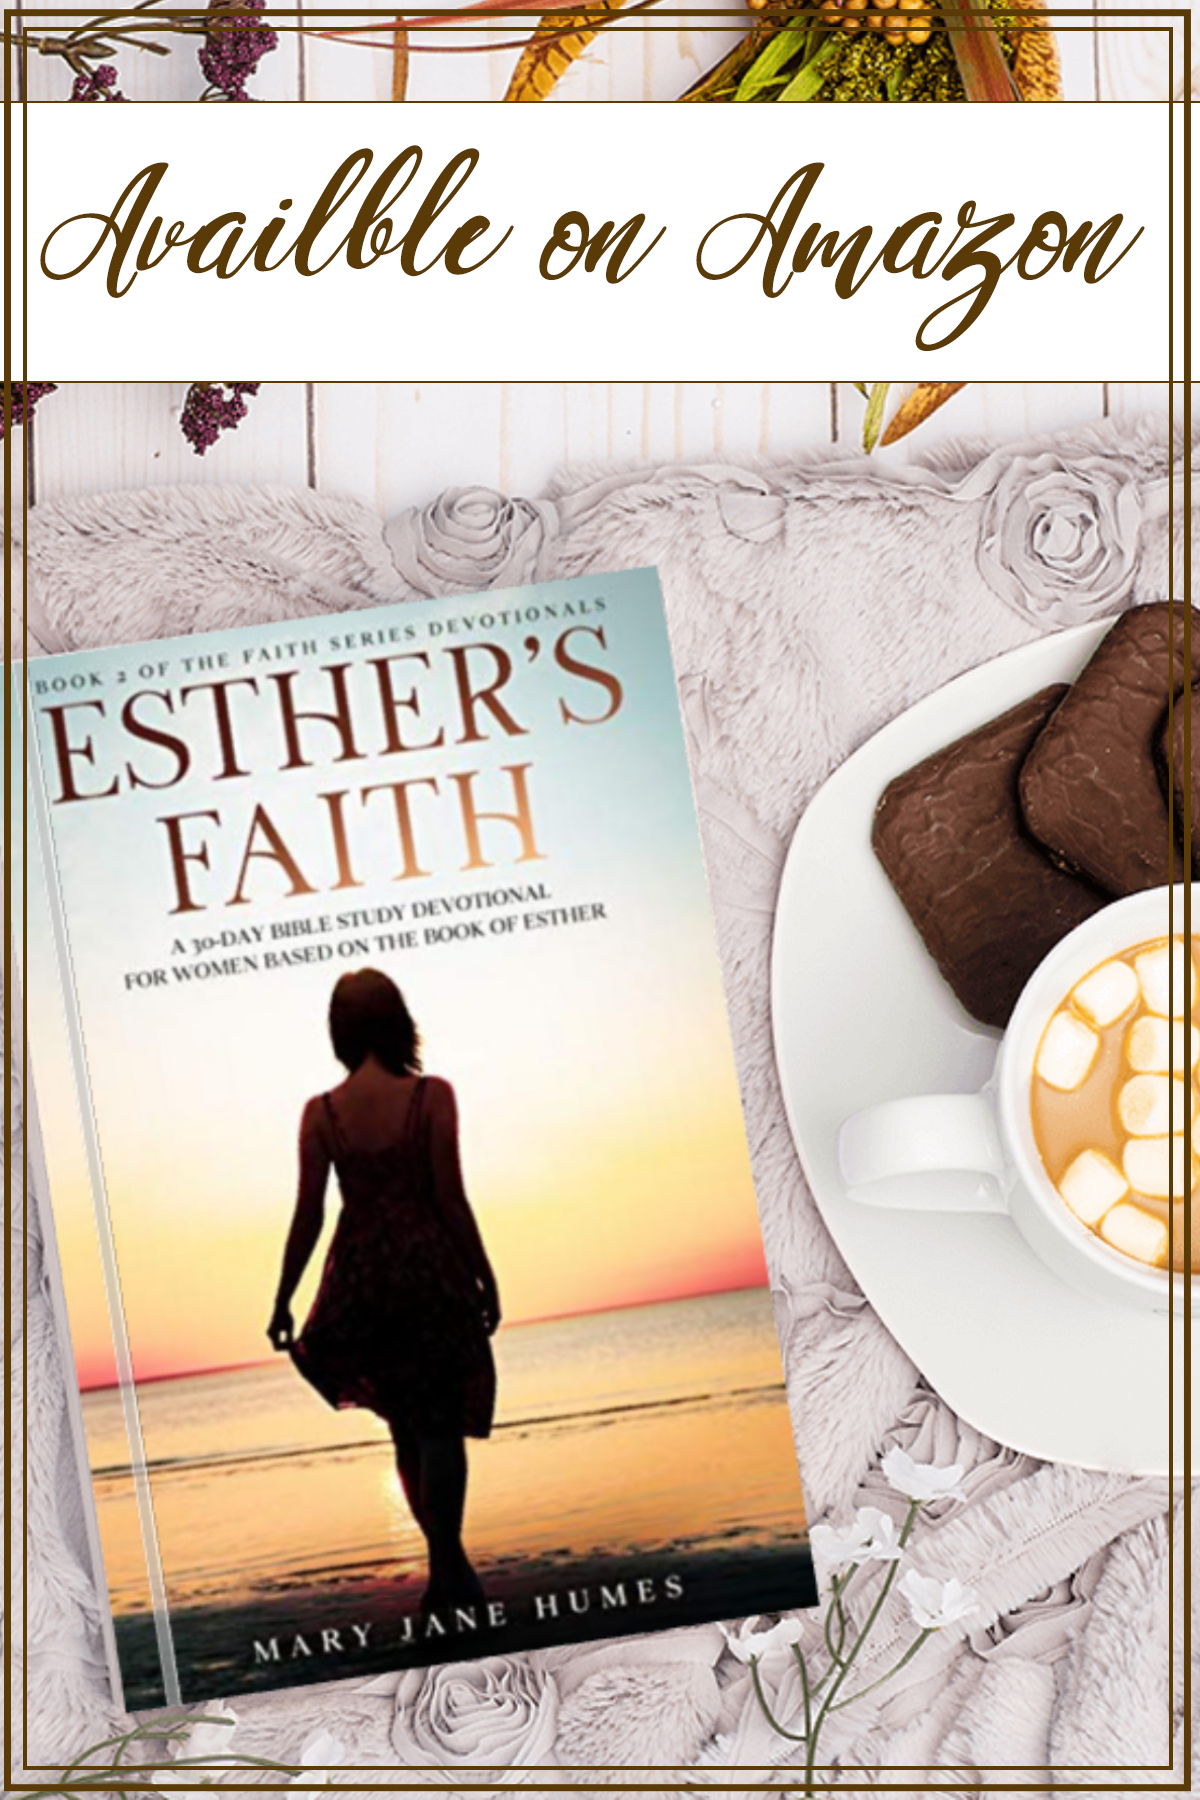 The Faith Series Devotionals for Women